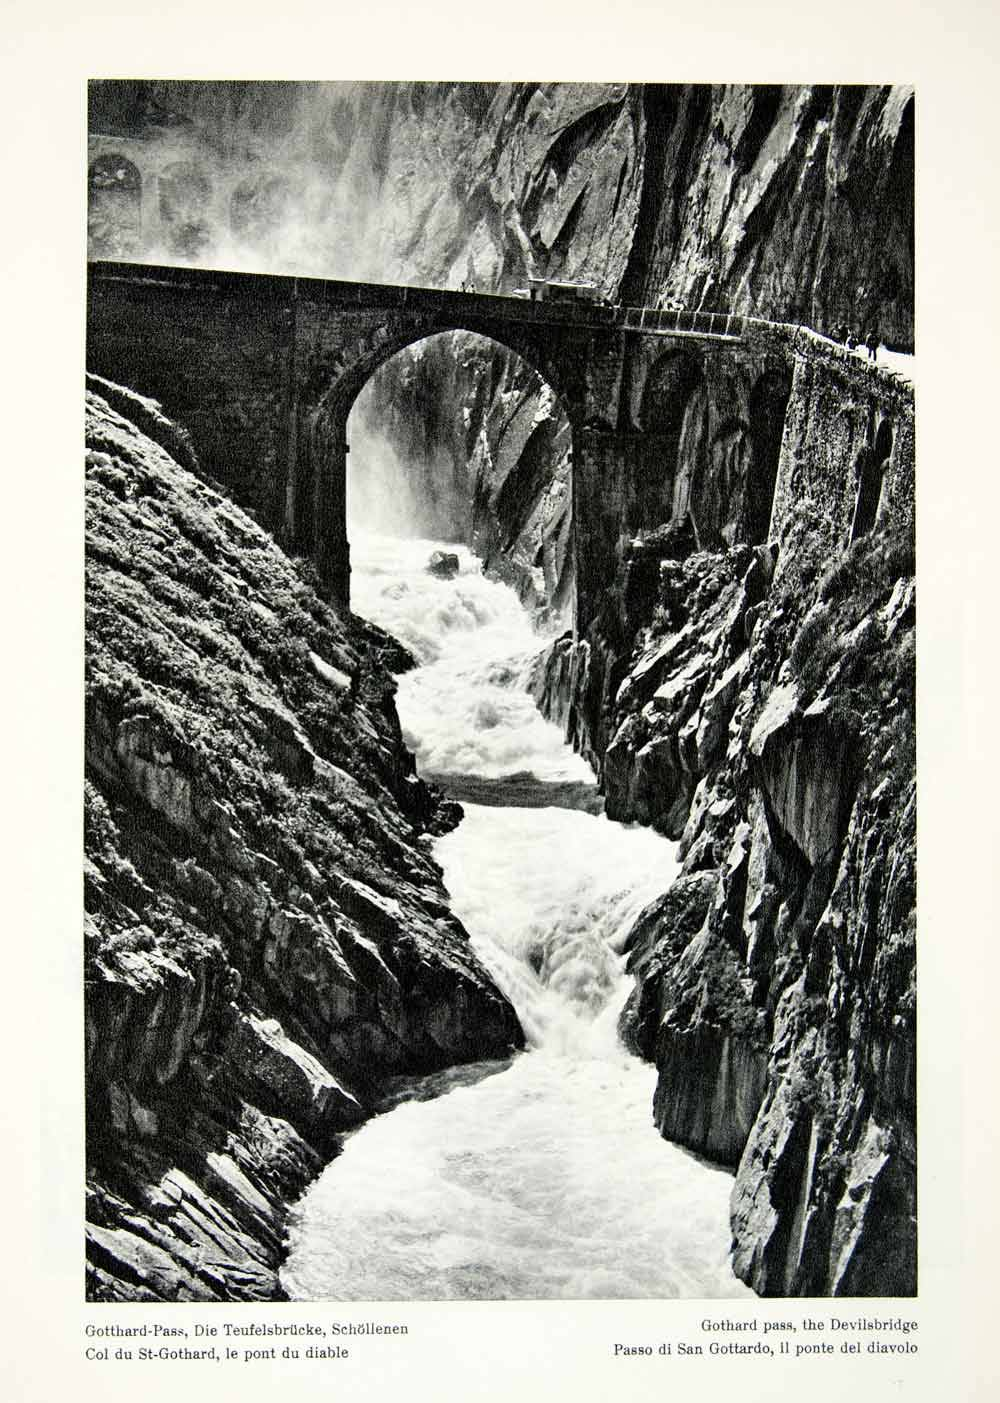 firsttimeuser:  Devils bridge, Reuss River, Gothard Pass in the Swiss Alps, 1950s